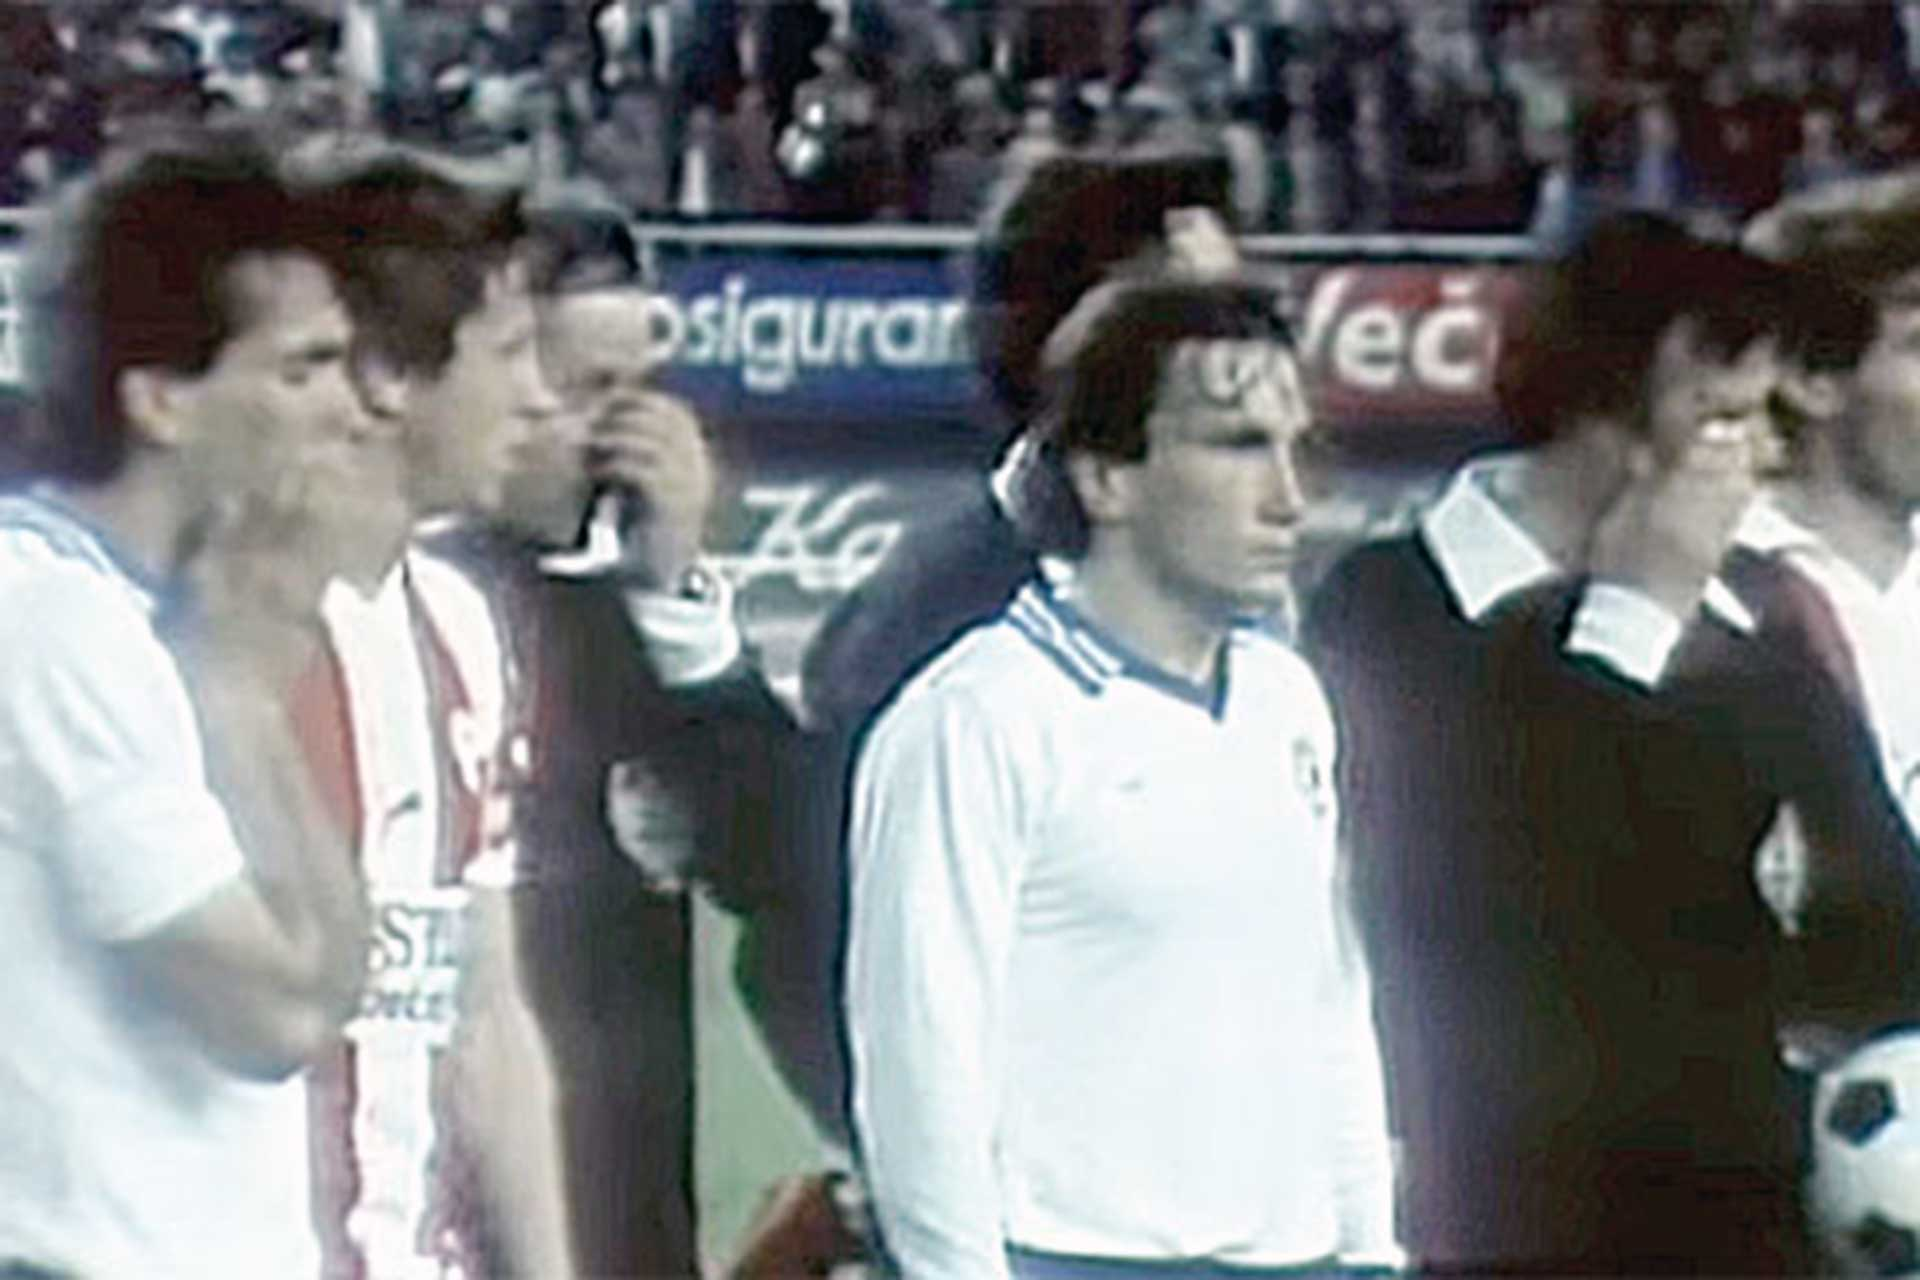 Footballers of Hajduk Split and Red Star Belgrade after the match was stopped (Photo: TV snapshot)